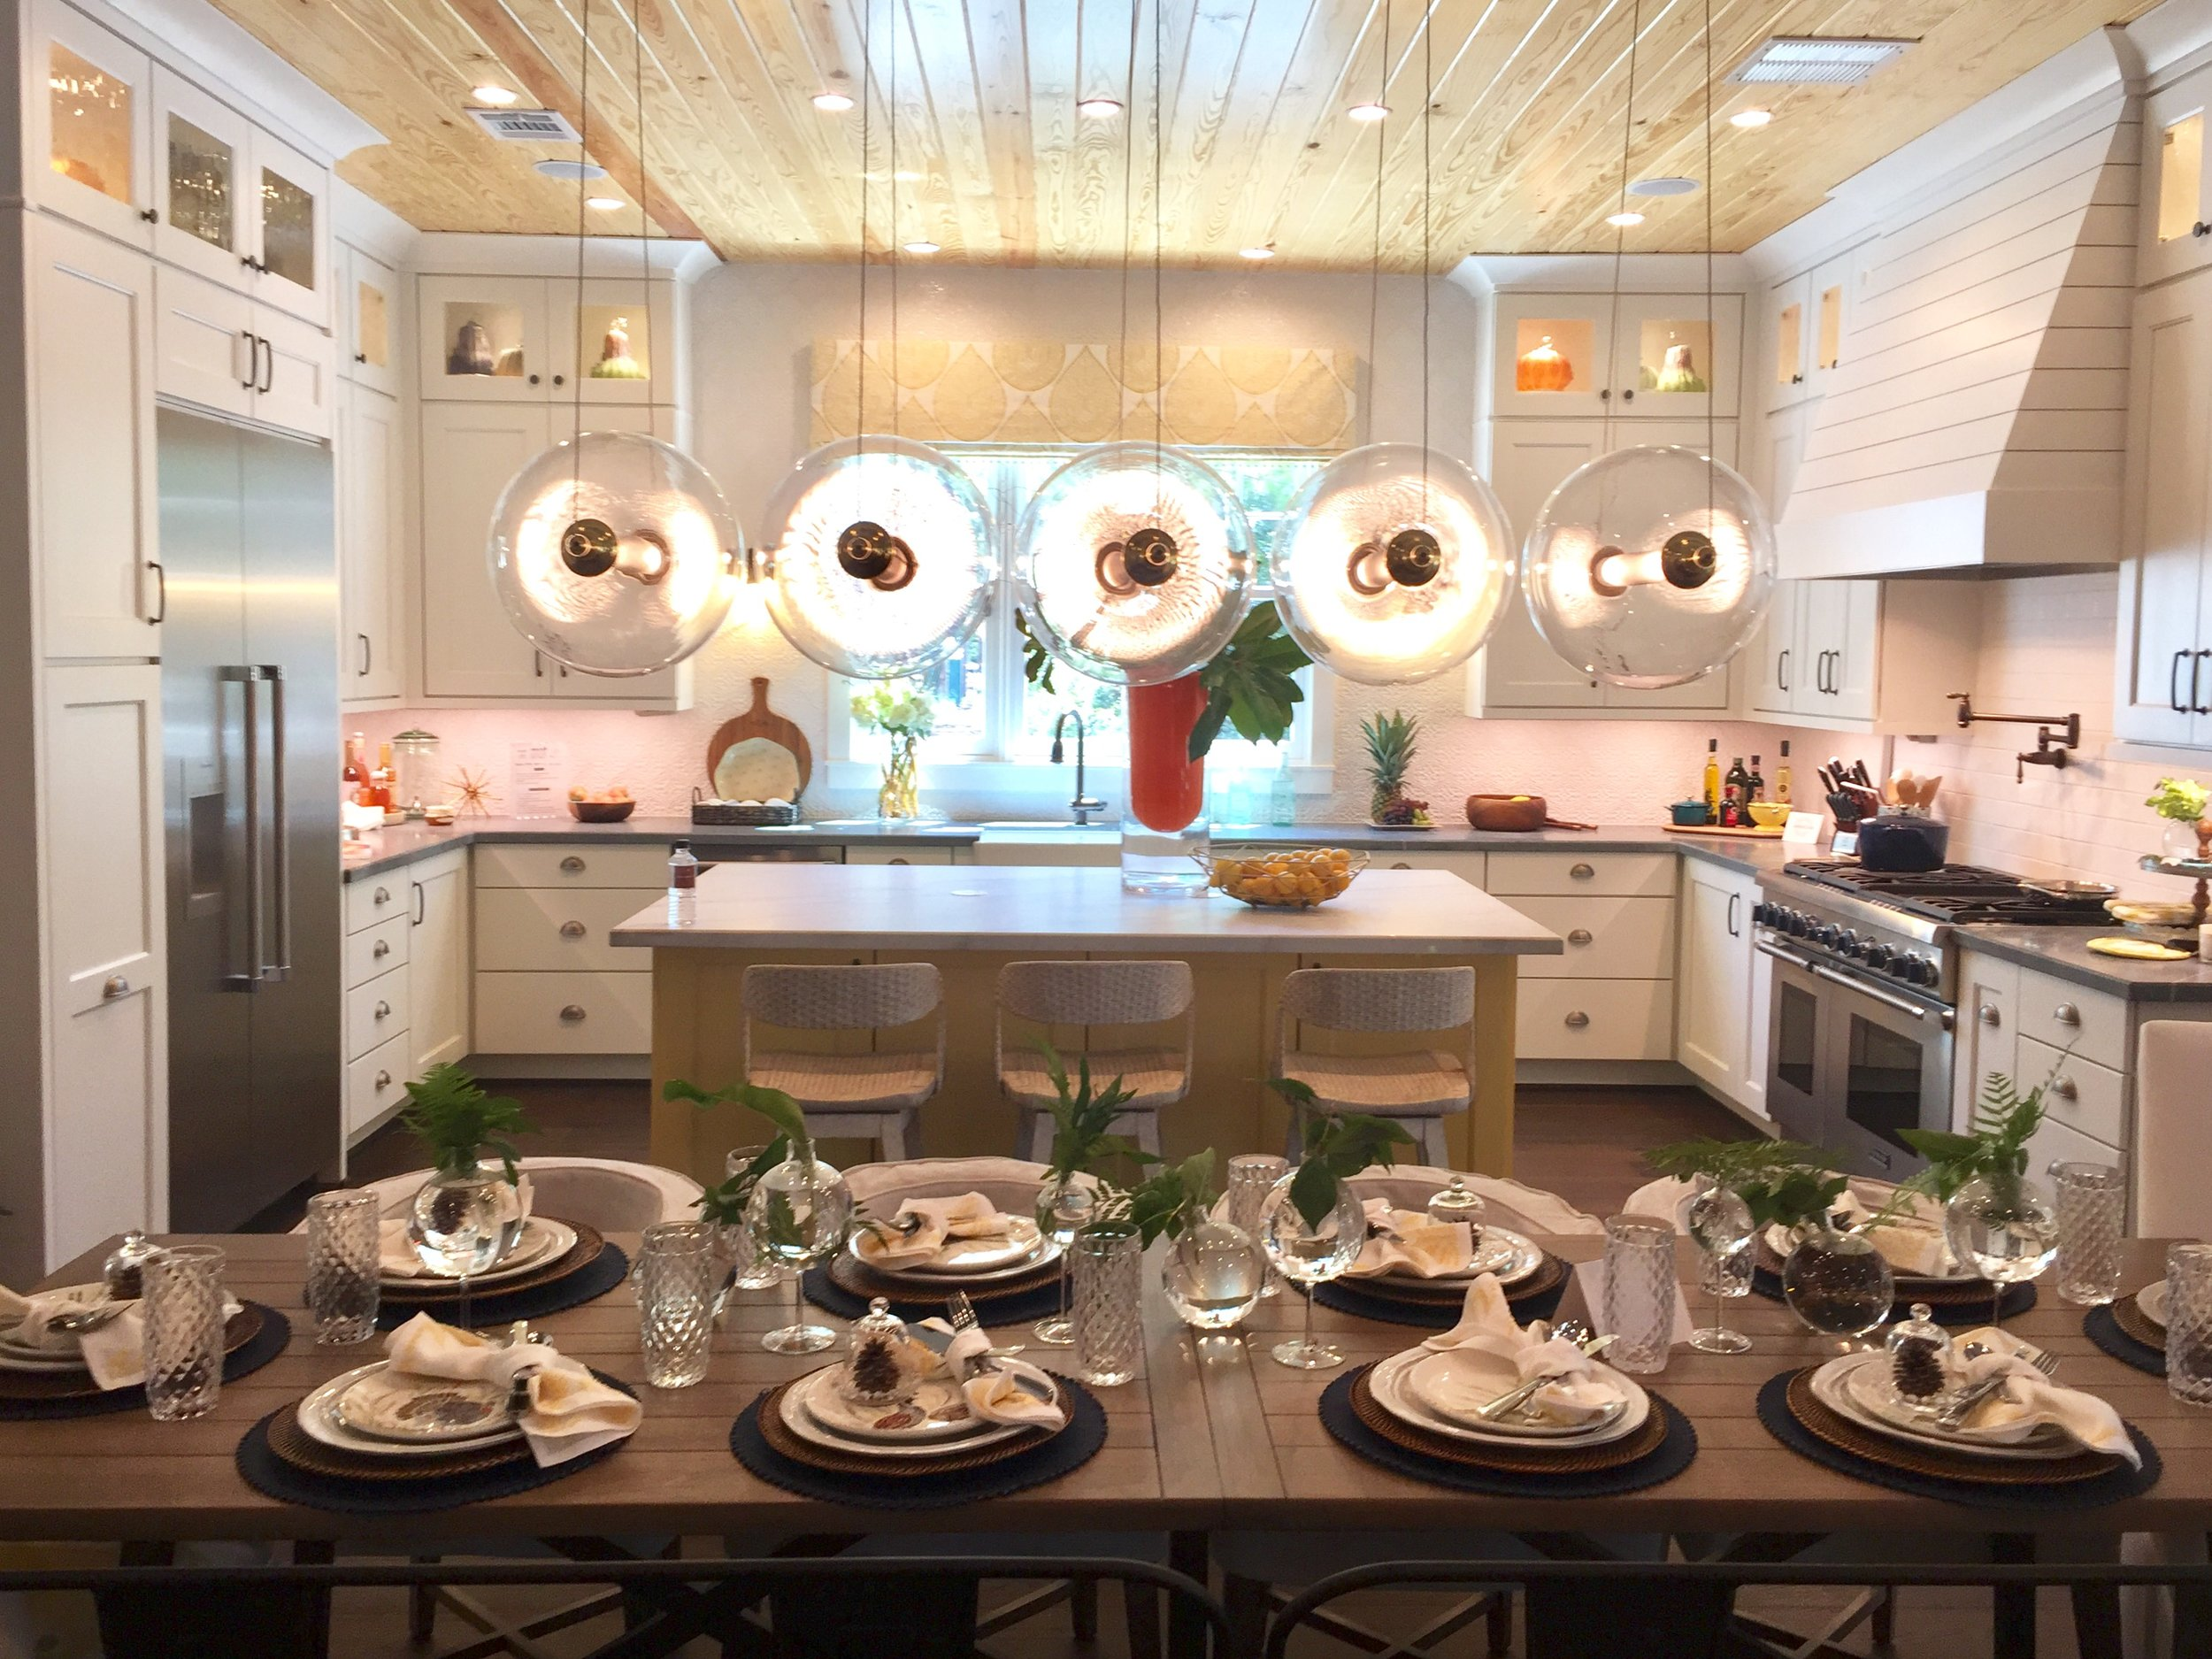 Southern Living Showcase Home - Kitchen and breakfast room, Designed by Chairma Design Group